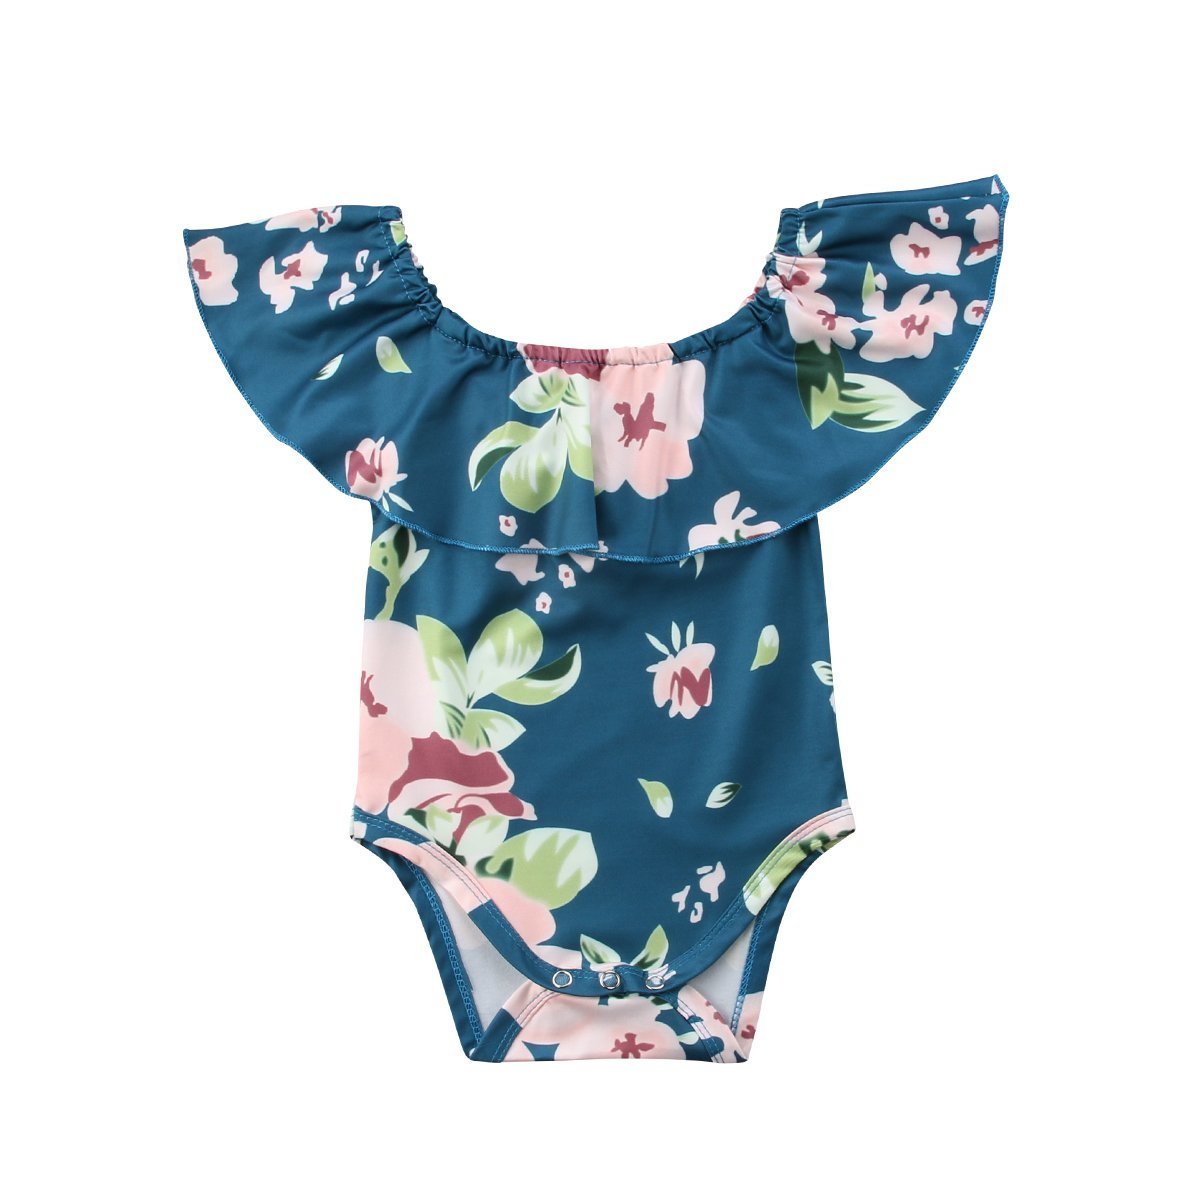 9feac43799bf Amazon.com  Infant Baby Girl Summer Floral Off Shoulder One Piece ...